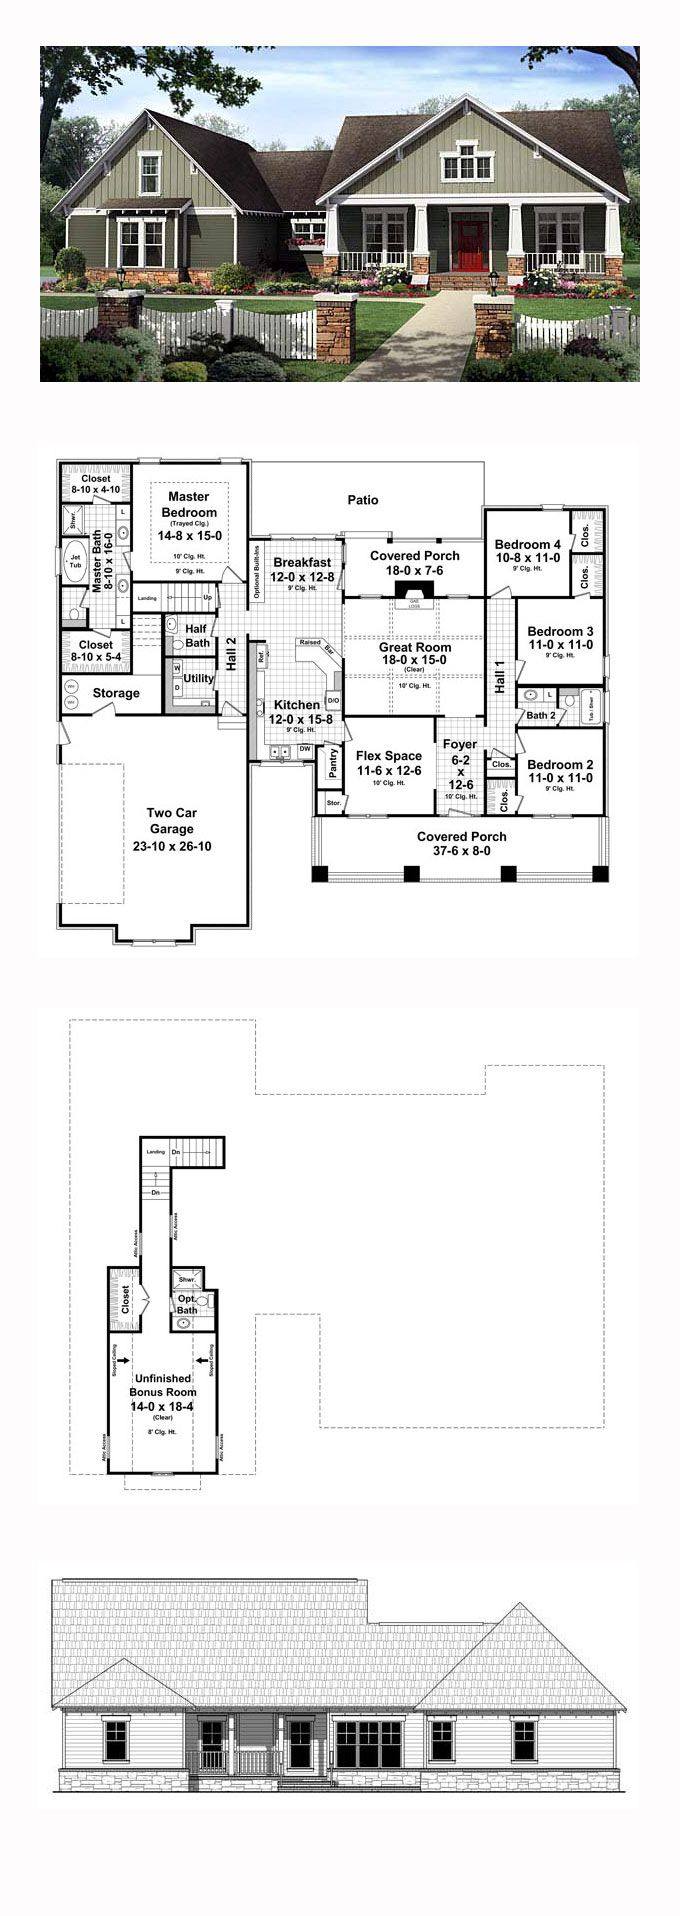 Craftsman House Plan 59207 | Total Living Area: 2199 sq. ft., 4 bedrooms and 2.5 bathrooms. The great room includes gas logs, a coffered ceiling, and beautiful views to the covered rear porch beyond. The master bedroom also features trayed ceilings and the master bathroom leaves nothing to be desired. #craftsmanhome